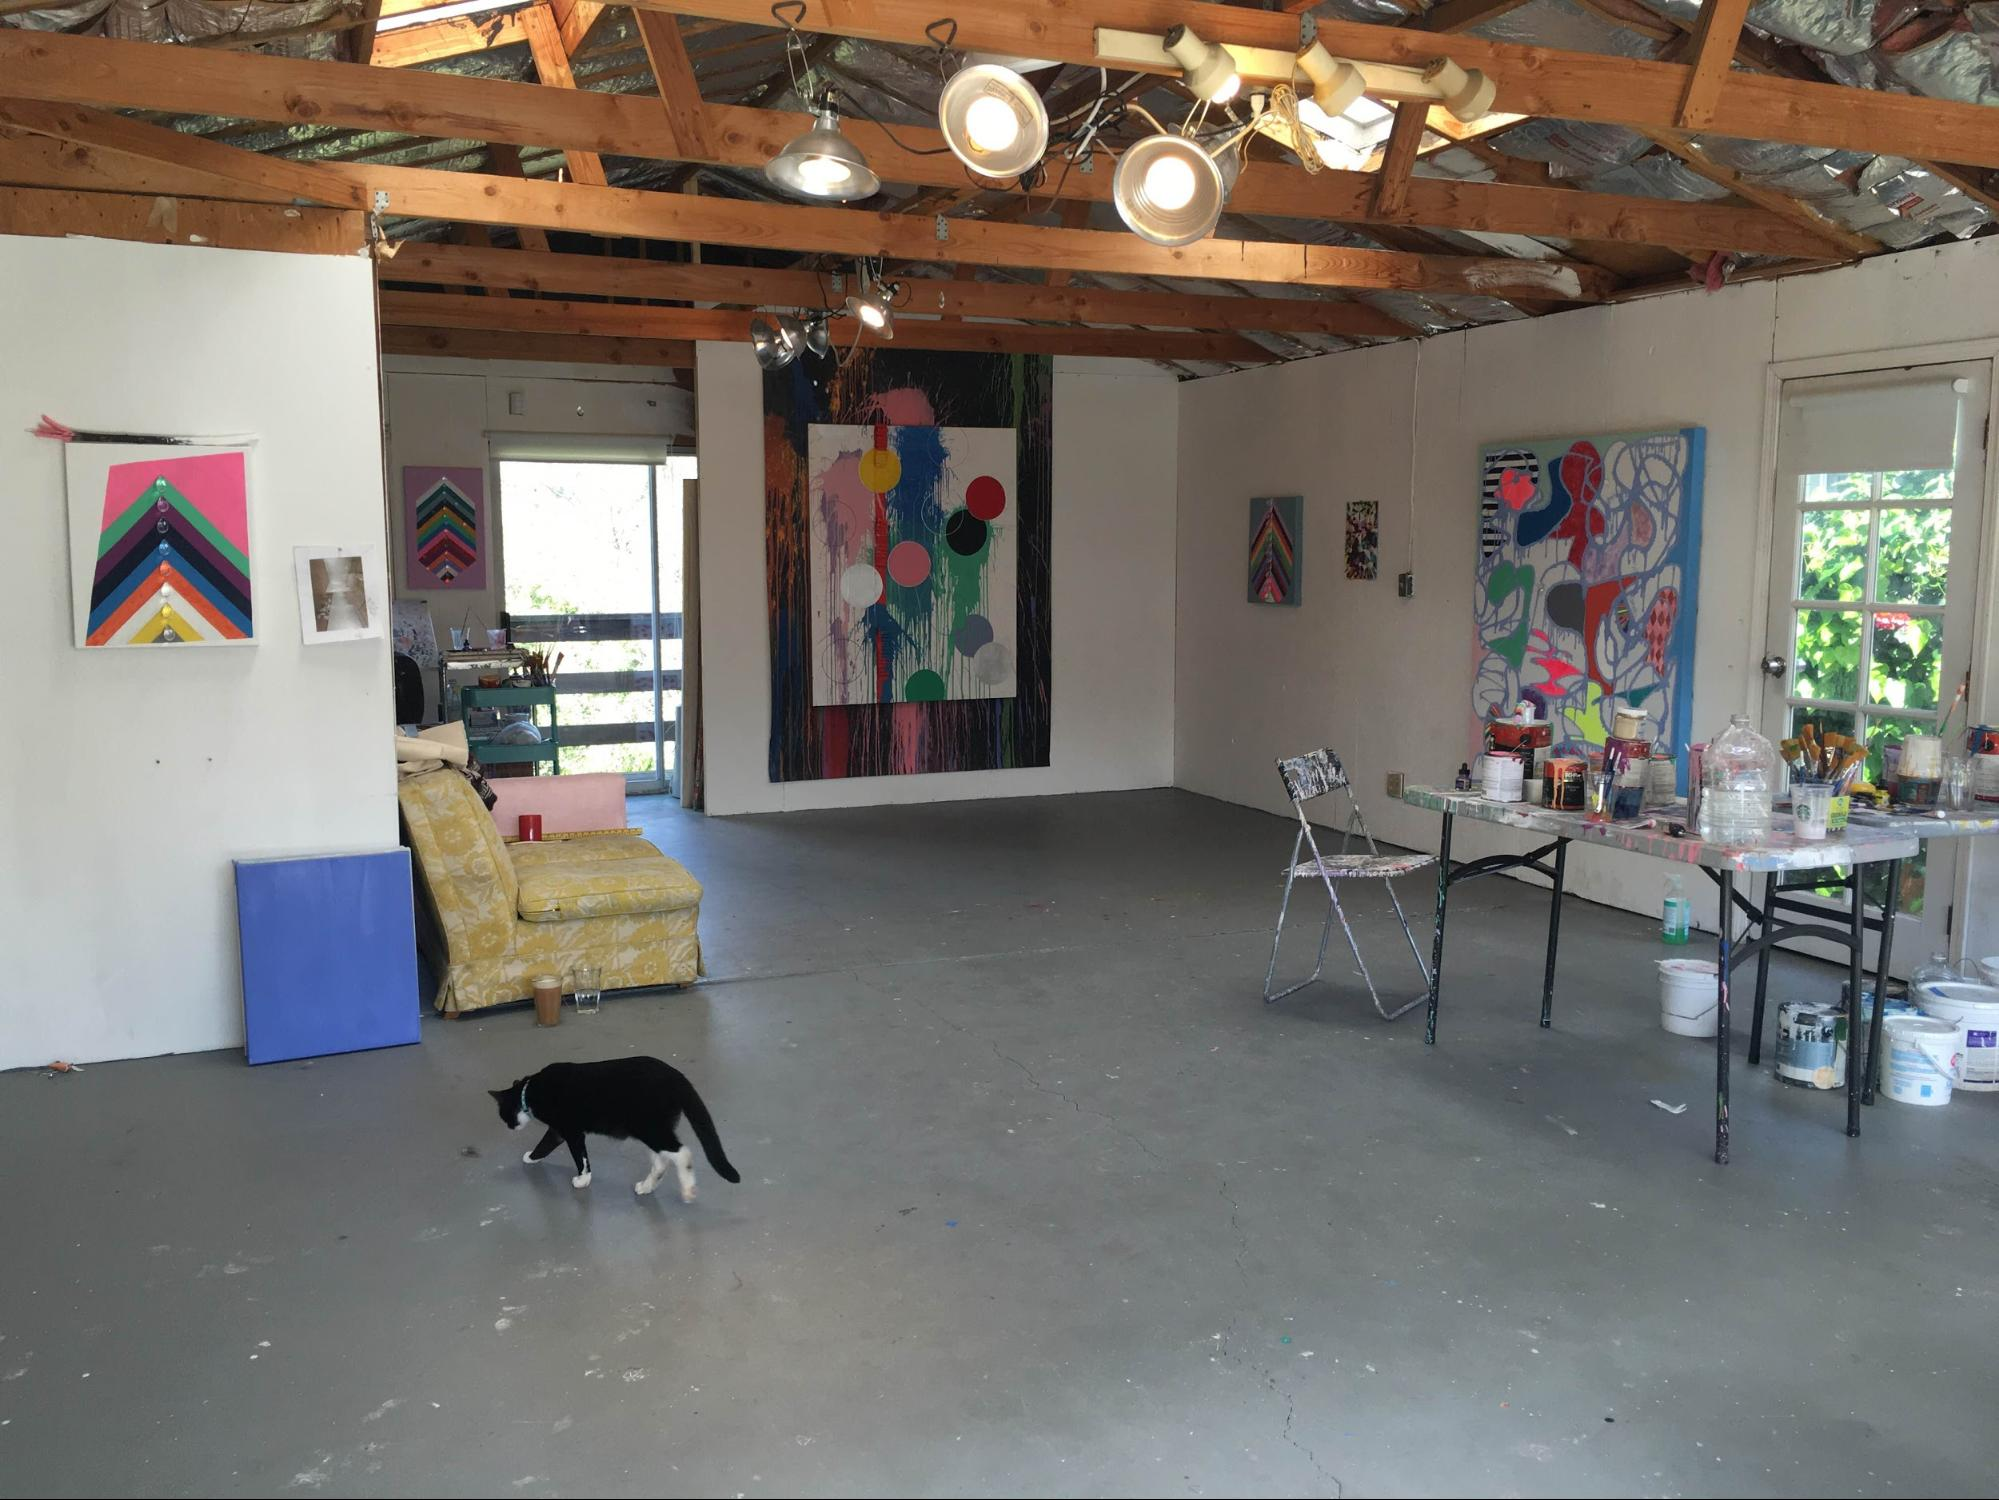 Sarah Cain's Los Angeles Studio, 2016